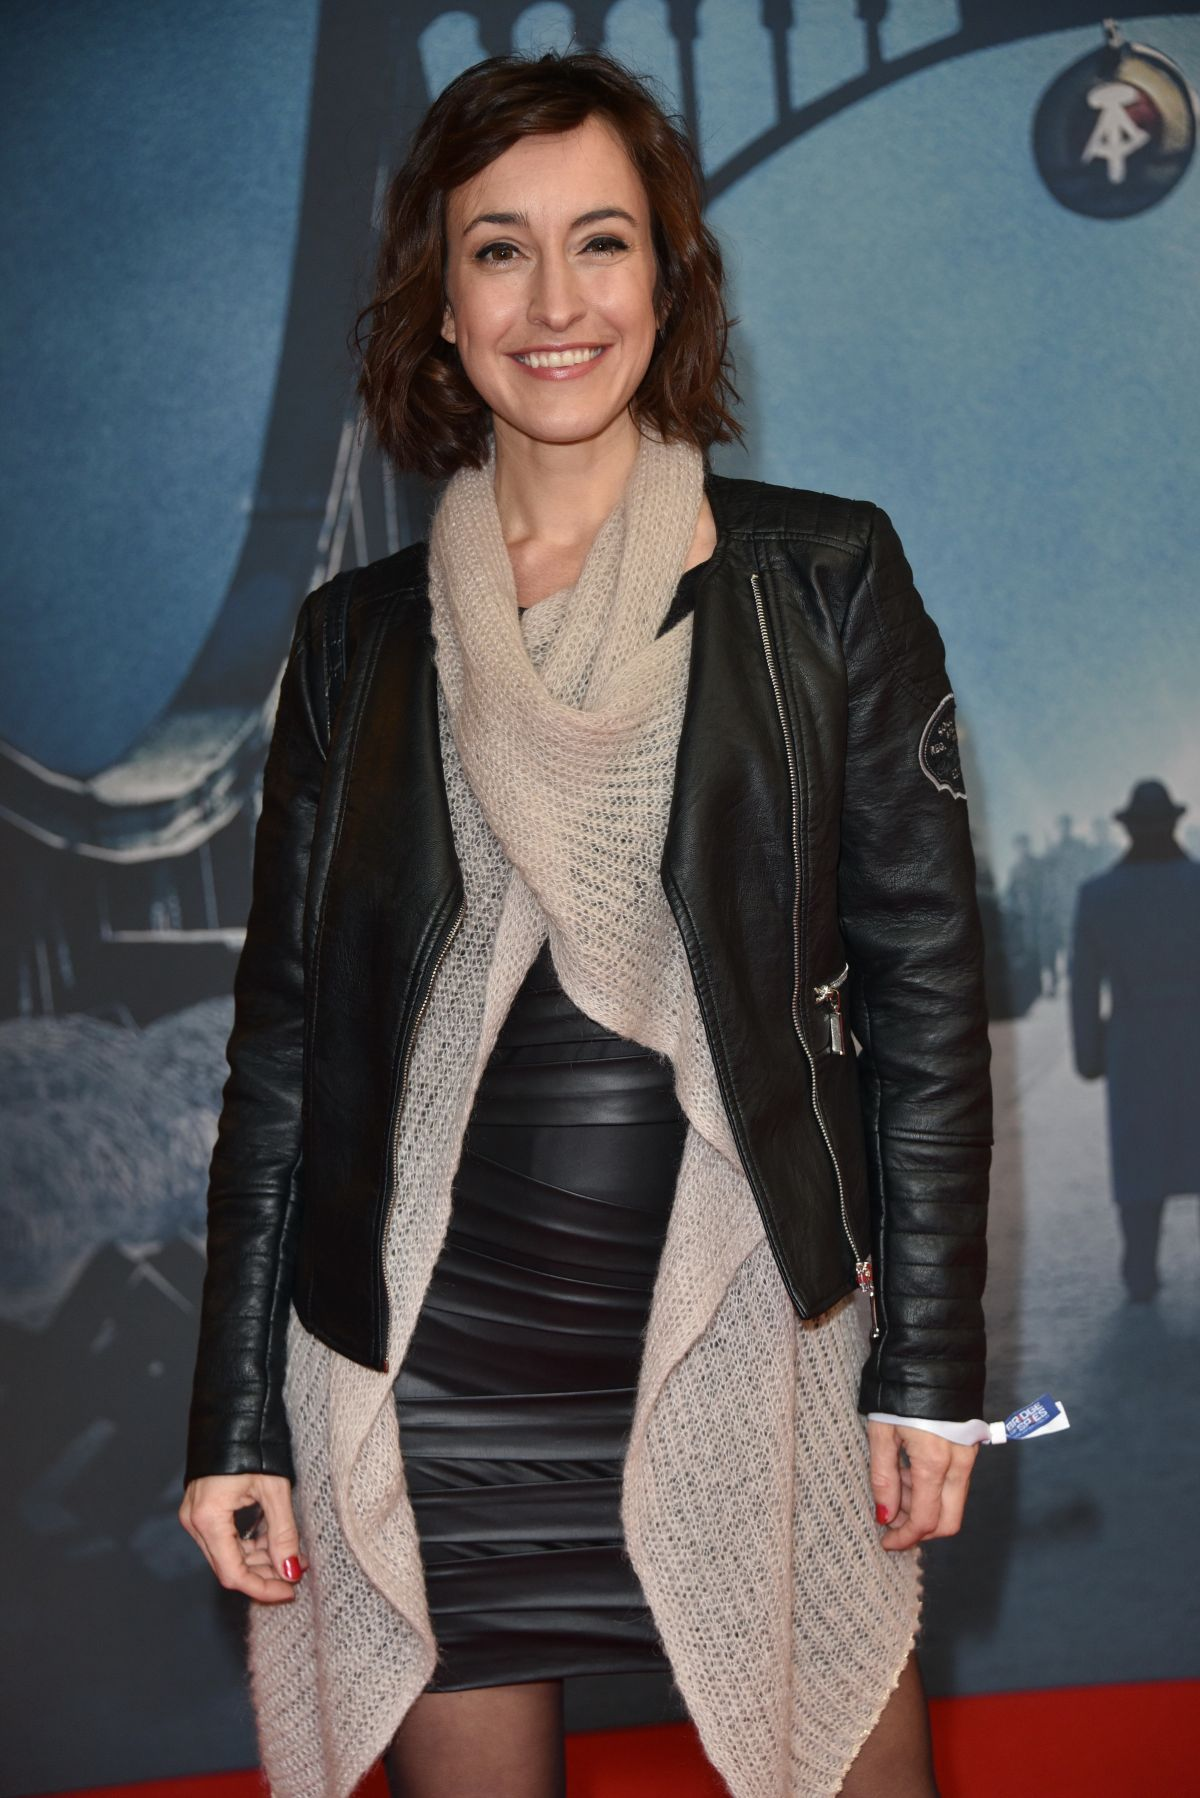 MAIKE VON BREMEN at Bridge of Spies Premiere at Zoo Palast in Berlin 11/13/2015